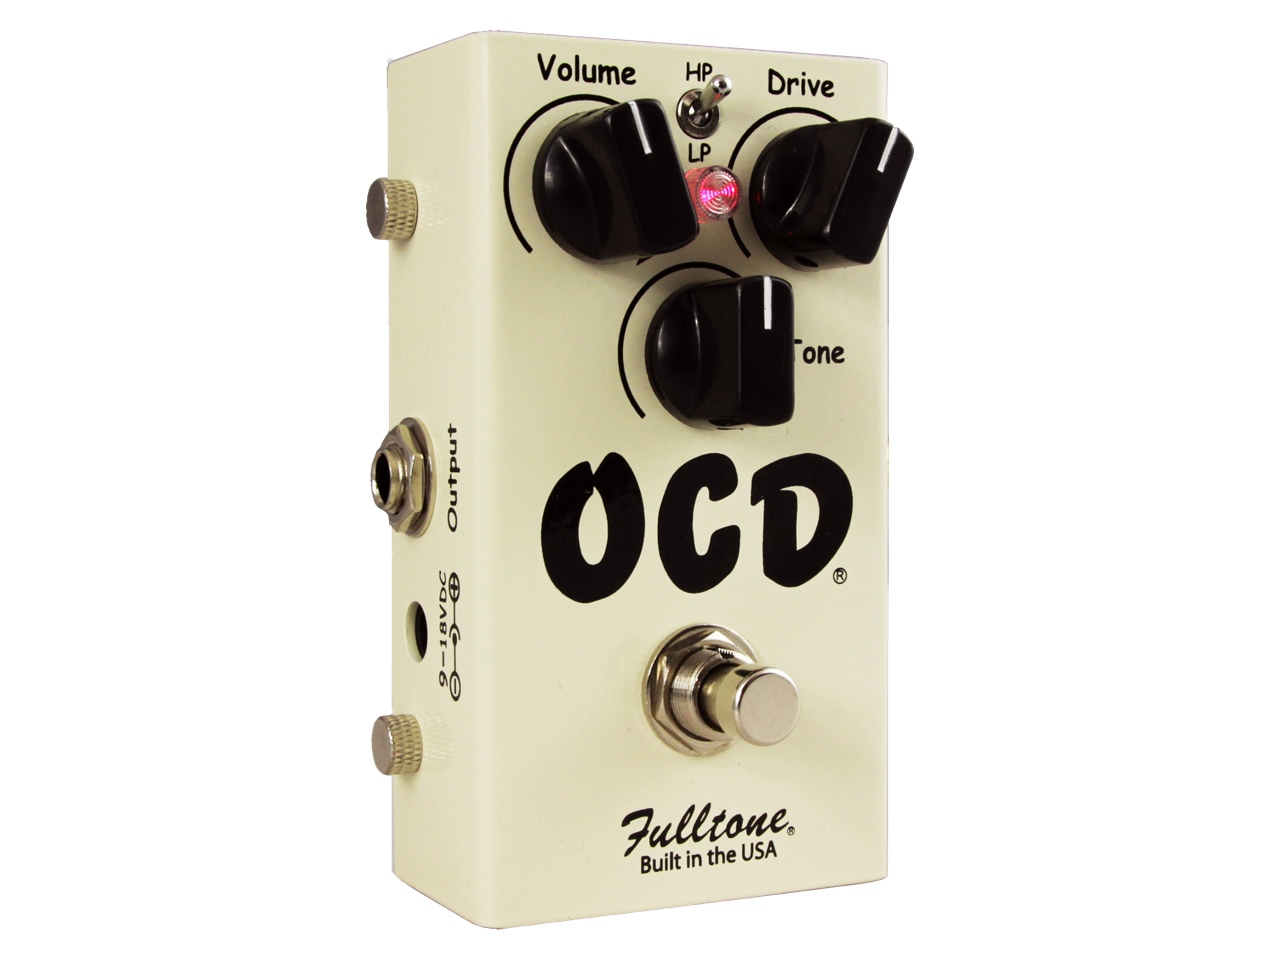 fulltone ocd bass